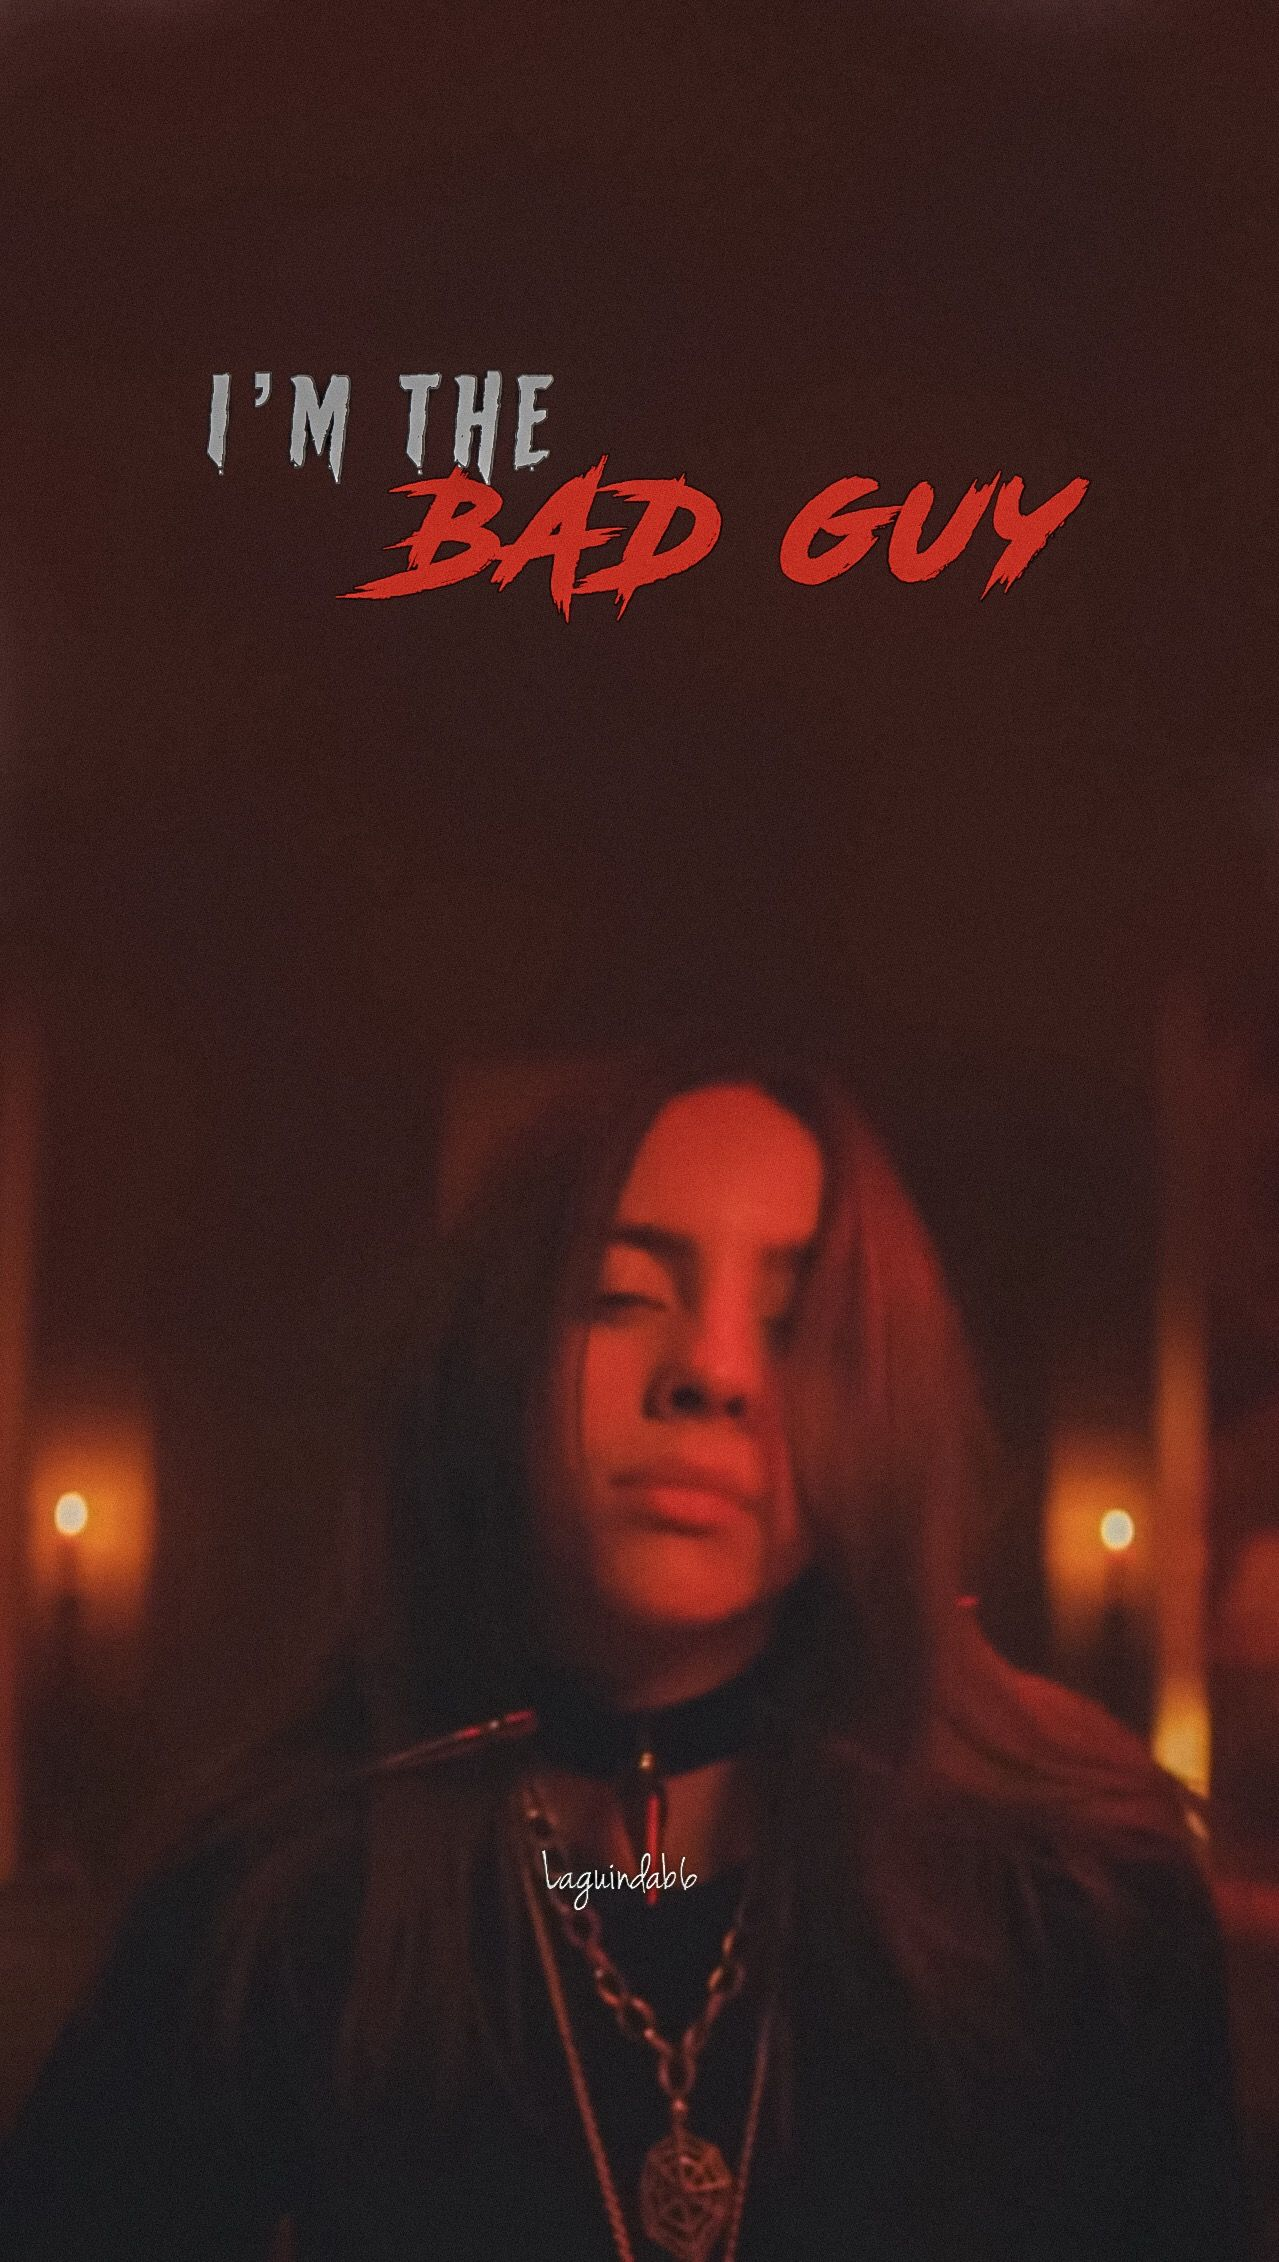 Billie Eilish Wallpaper Bad Guy Laguindab6 Billie Eilish Billie Bad Guy